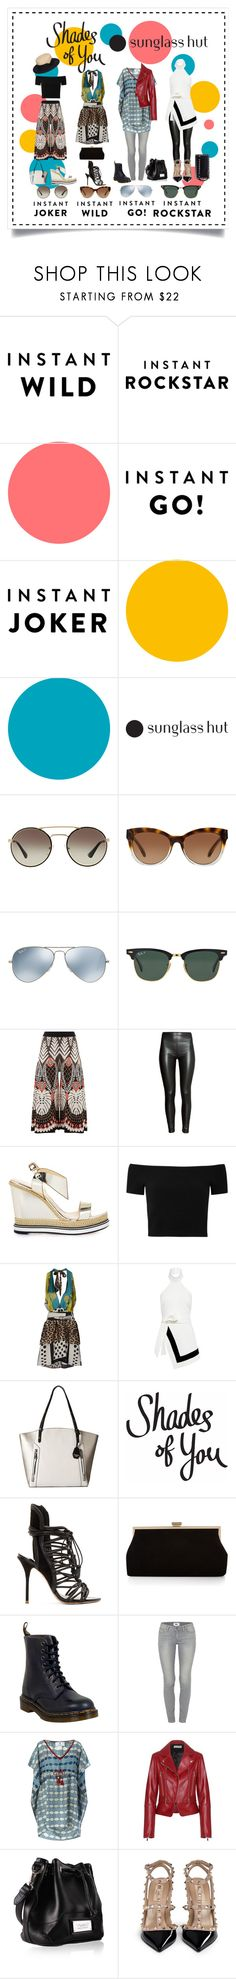 """""""Shades of You: Sunglass Hut Contest Entry"""" by aquarella ❤ liked on Polyvore featuring Prada, Michael Kors, Ray-Ban, Temperley London, H&M, Nicholas Kirkwood, Alice + Olivia, SHI 4, Finders Keepers and Jessica Simpson"""